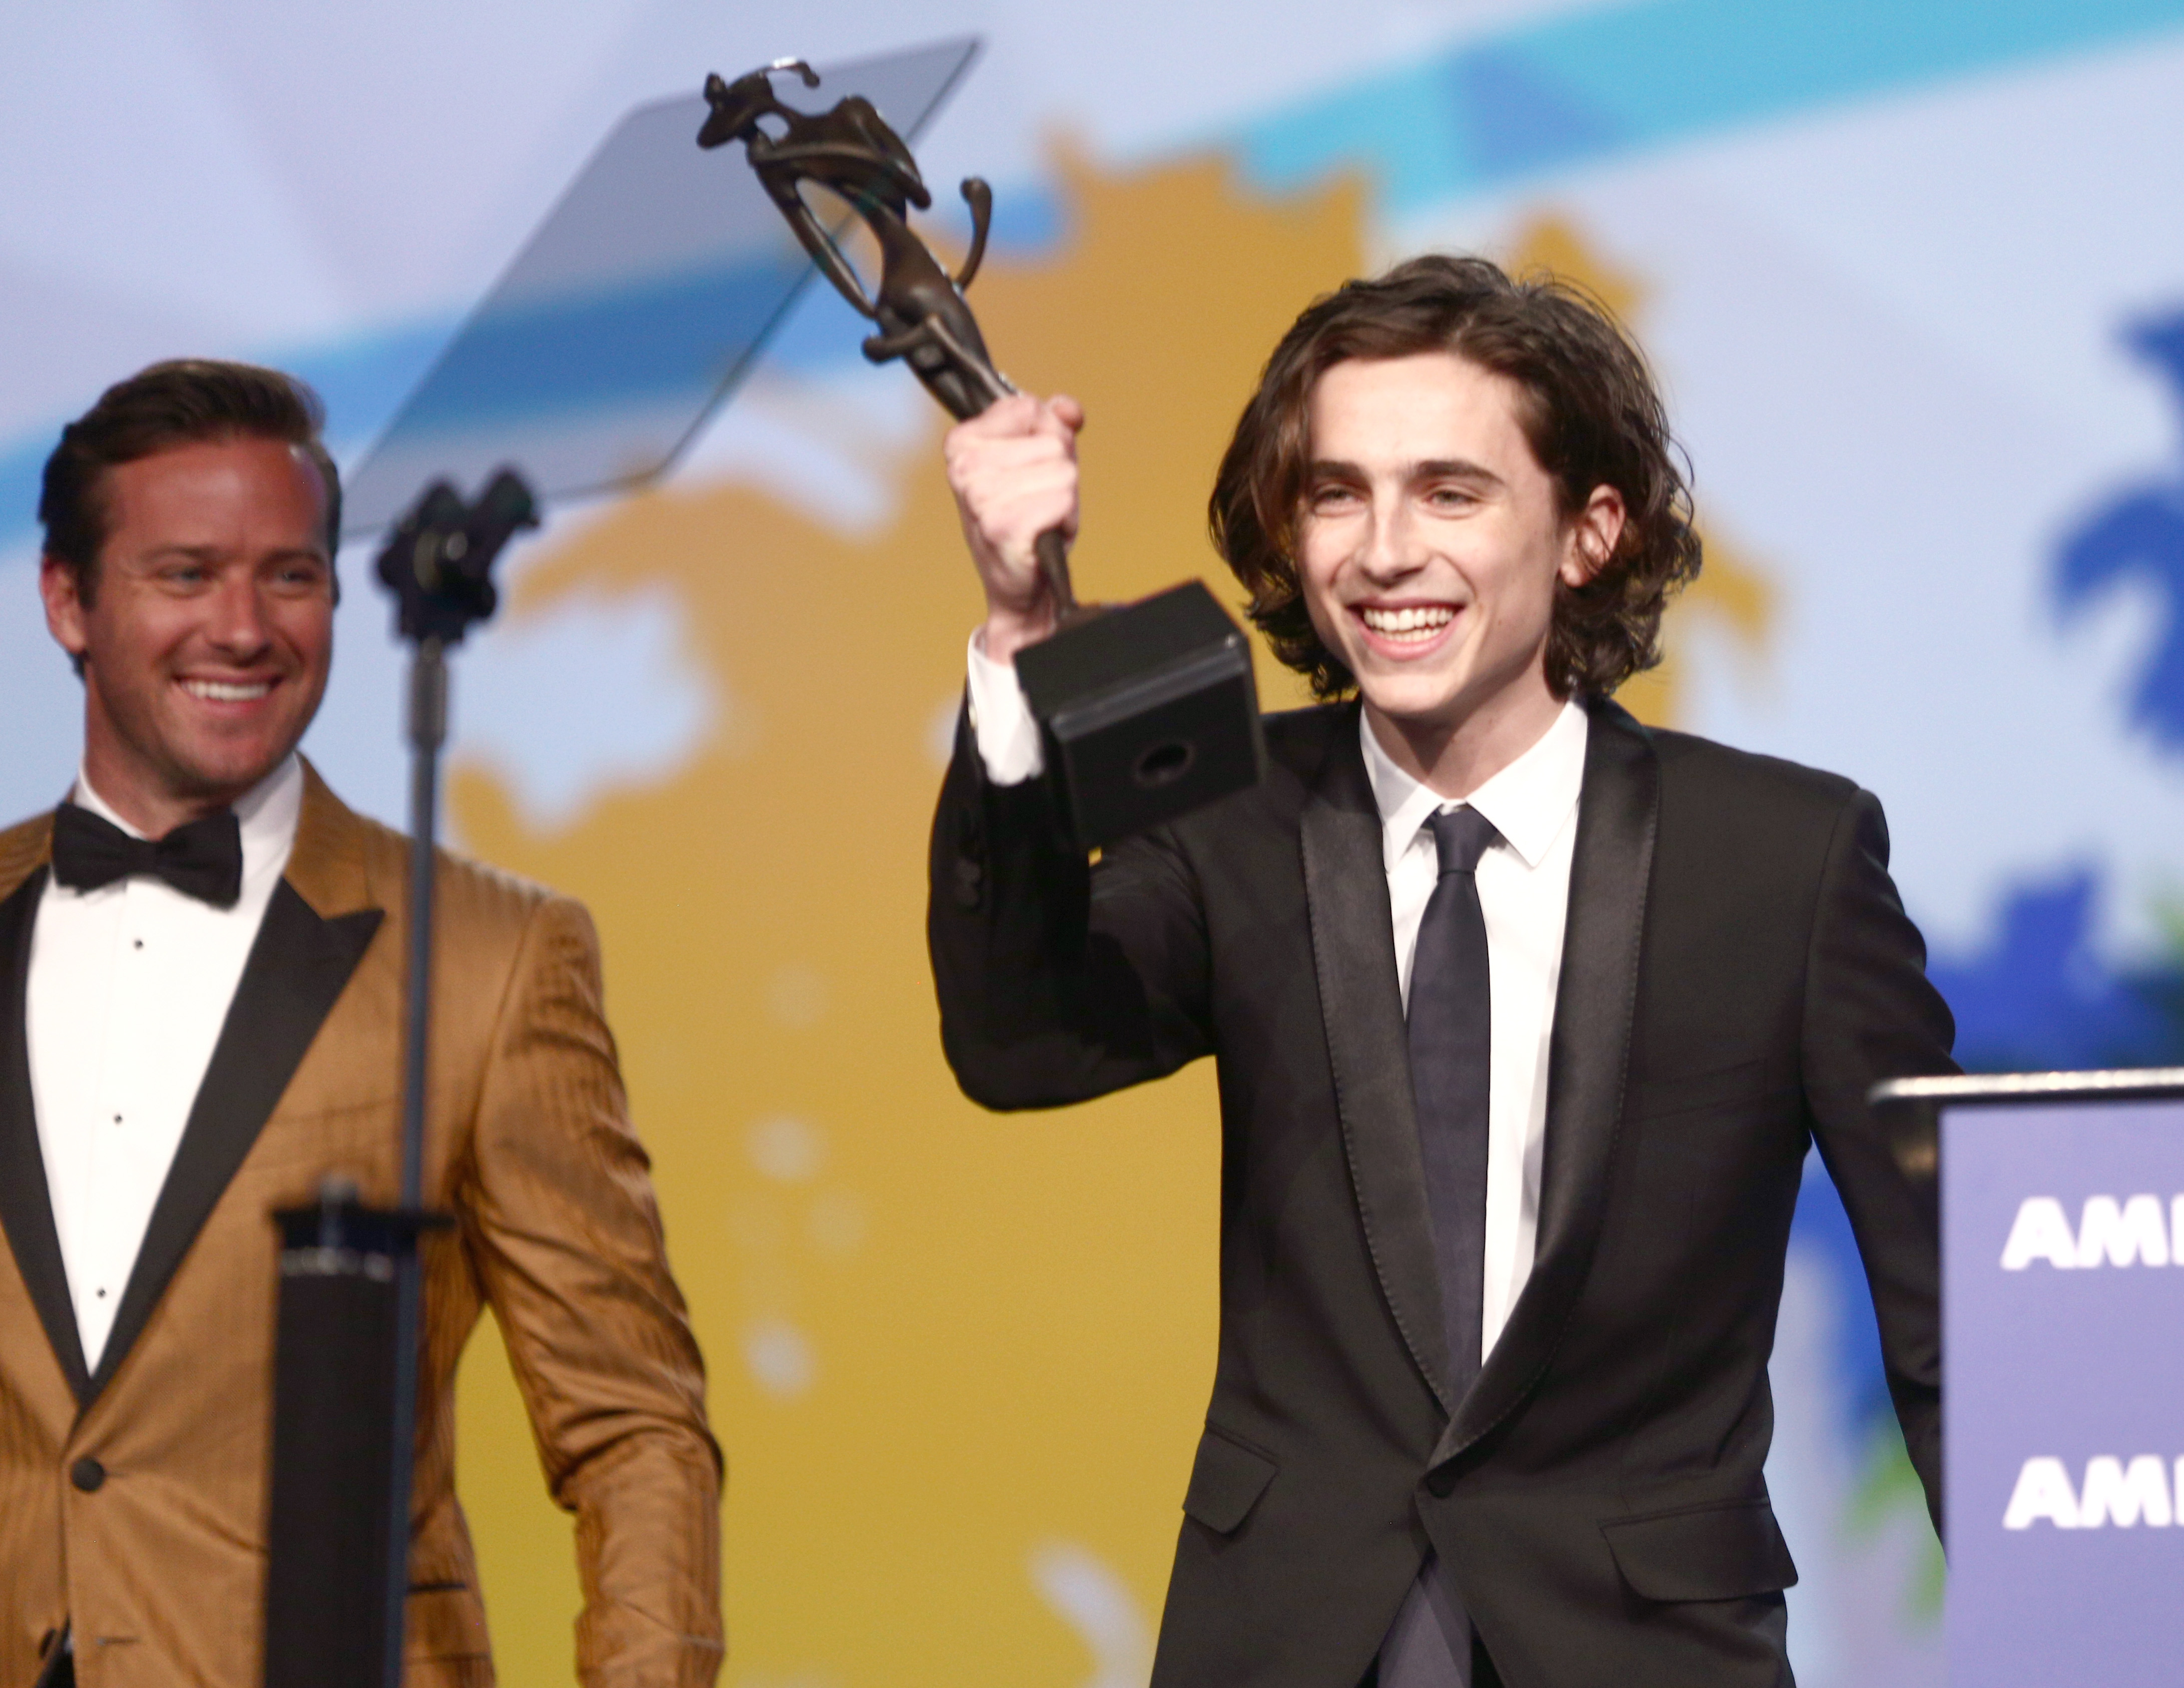 PALM SPRINGS, CA - JANUARY 02: Arnie Hammer (L) and Timothee Chalamet onstage at the 29th Annual Palm Springs International Film Festival Awards Gala at Palm Springs Convention Center on January 2, 2018 in Palm Springs, California. (Photo by Rich Fury/Getty Images for Palm Springs International Film Festival ) *** Local Caption *** Timothee Chalamet, Arnie Hammer